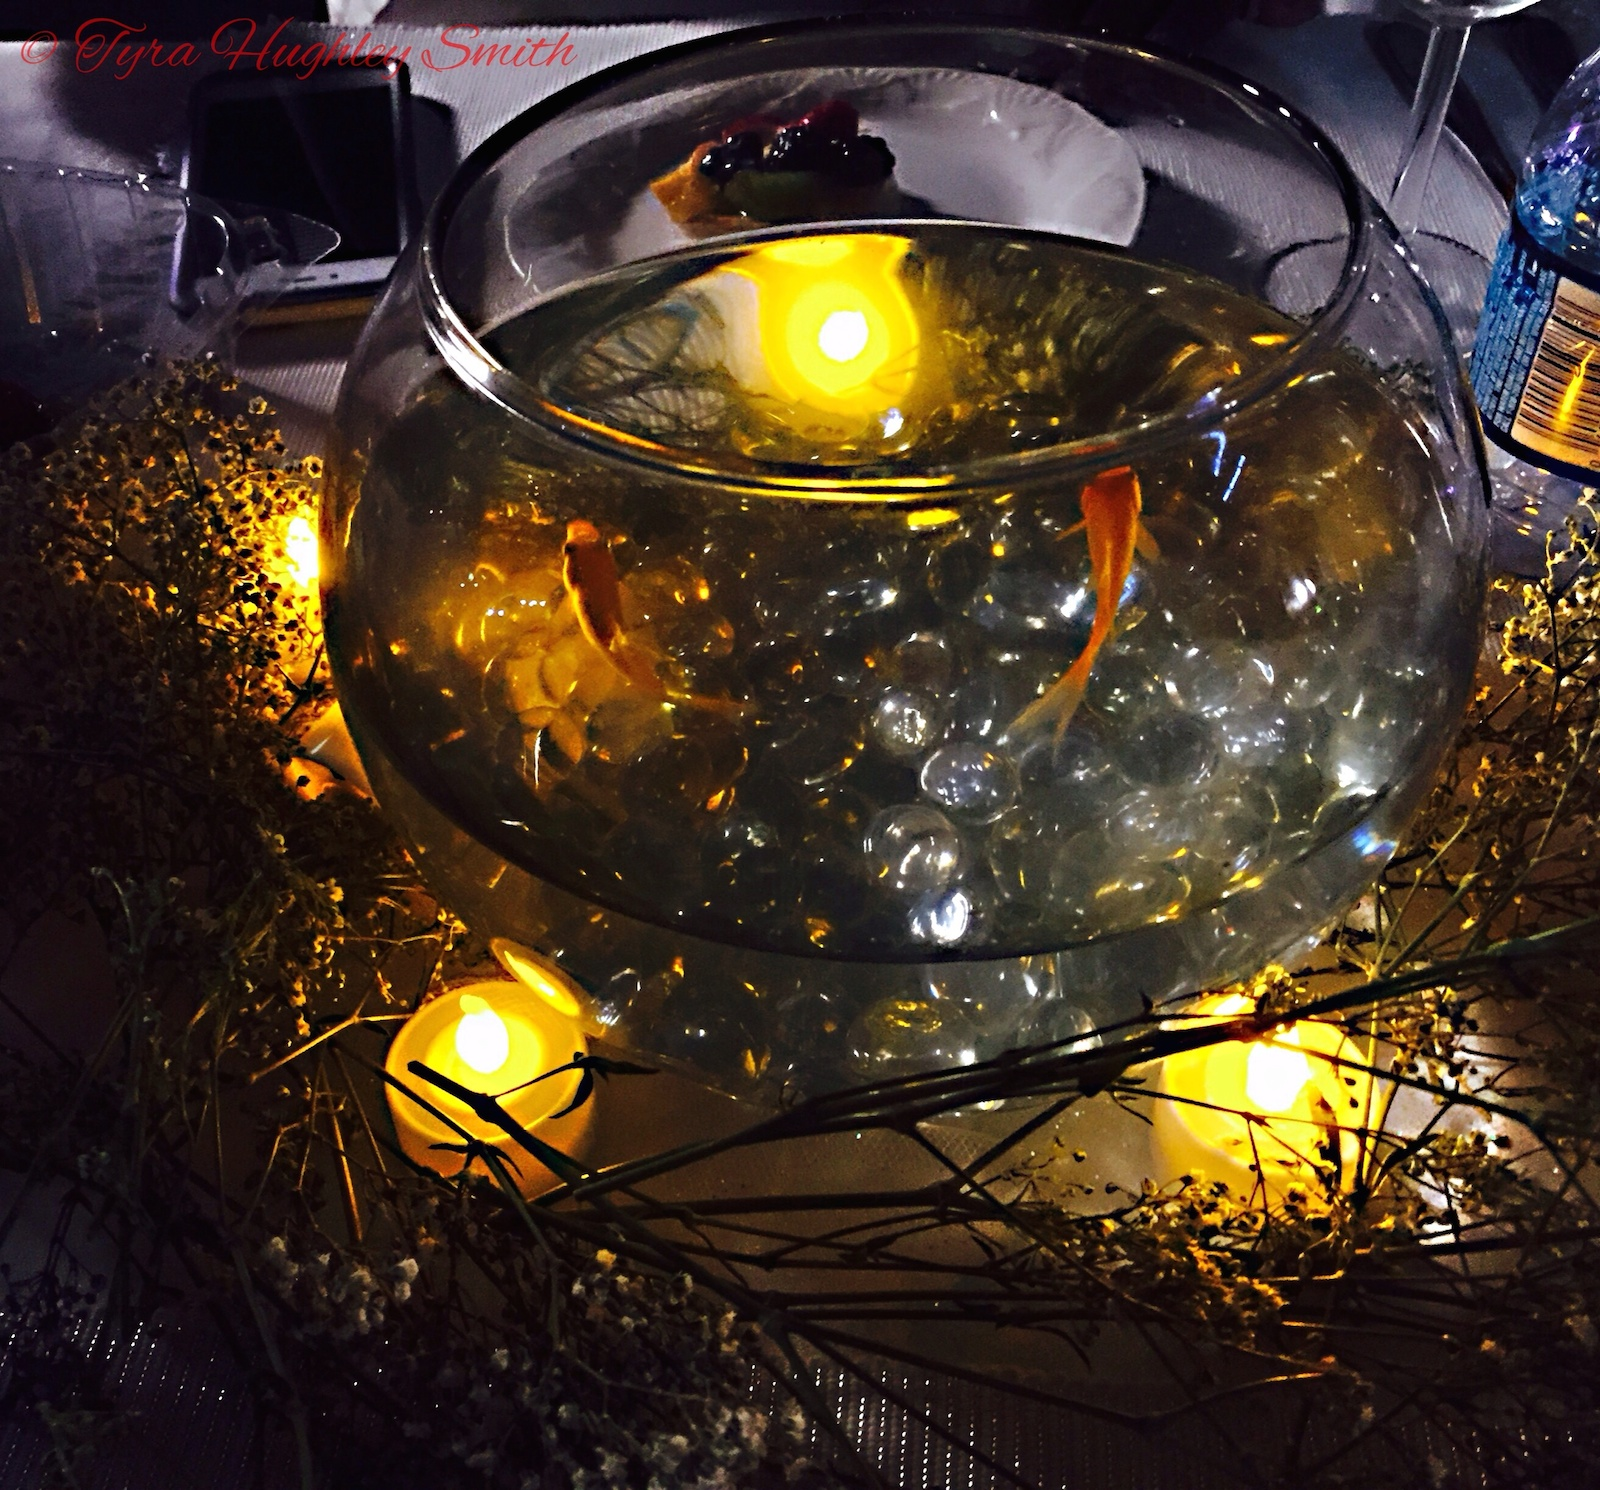 BarrisTourista-Diner en Blanc Los Angeles 2015 centerpiece fish